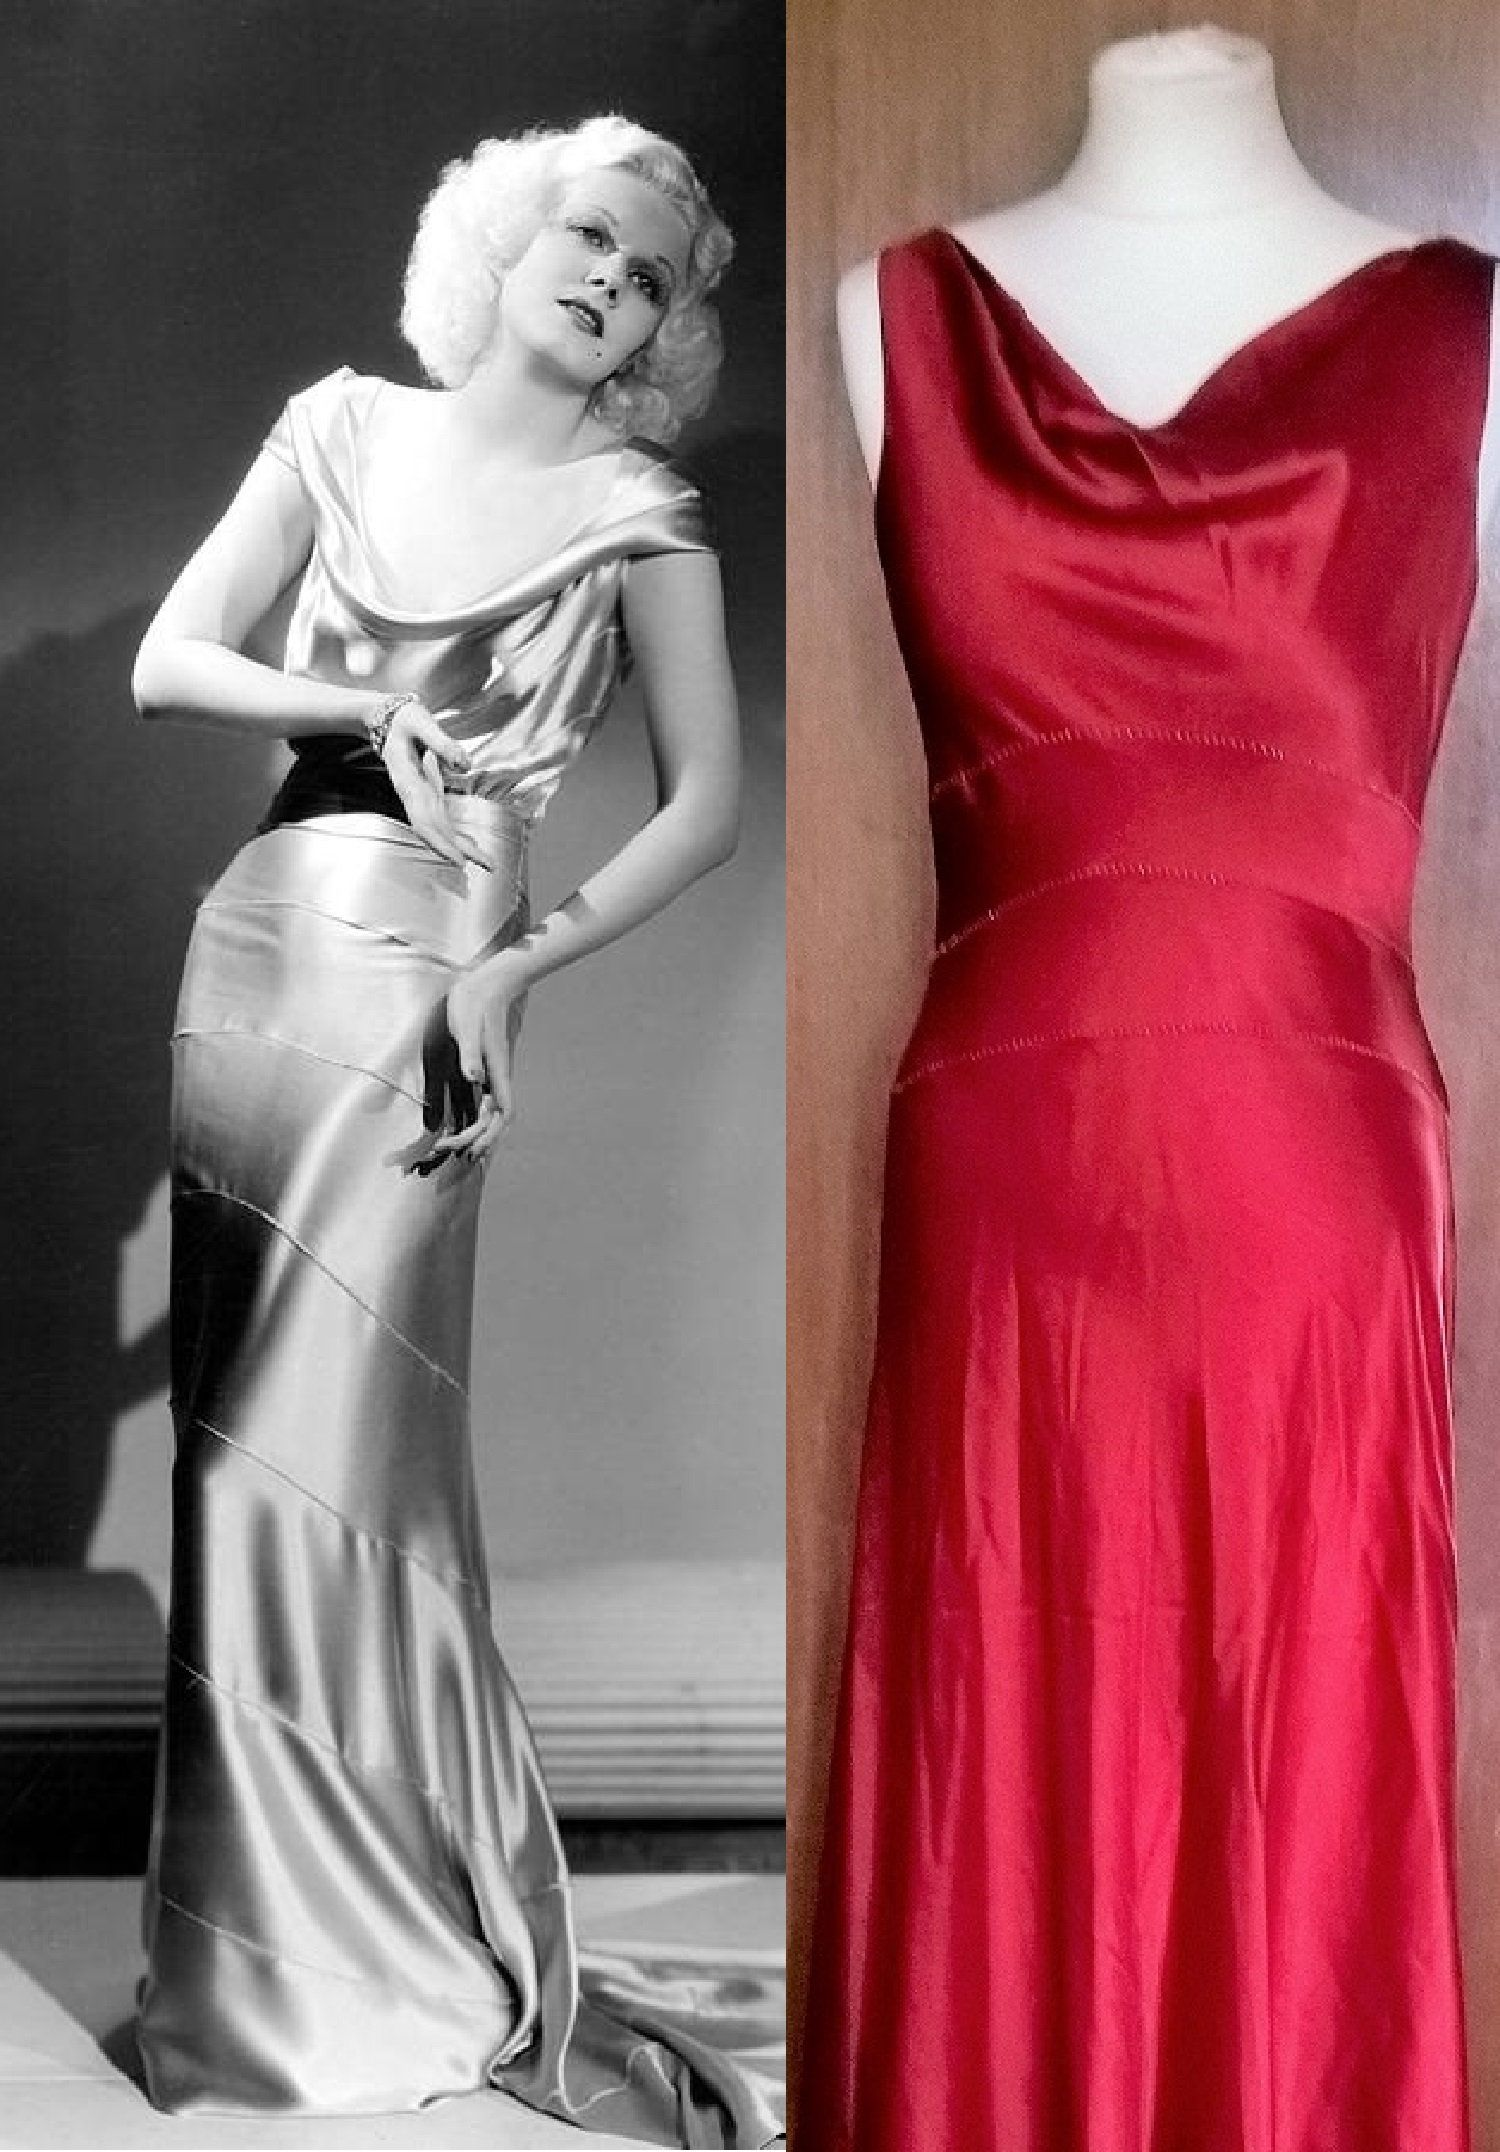 1920s Style Dress 1930s Art Deco Style Dress Downton Abbey 1920s Fashion Dresses Silk Dress Vintage Beaded Evening Gowns